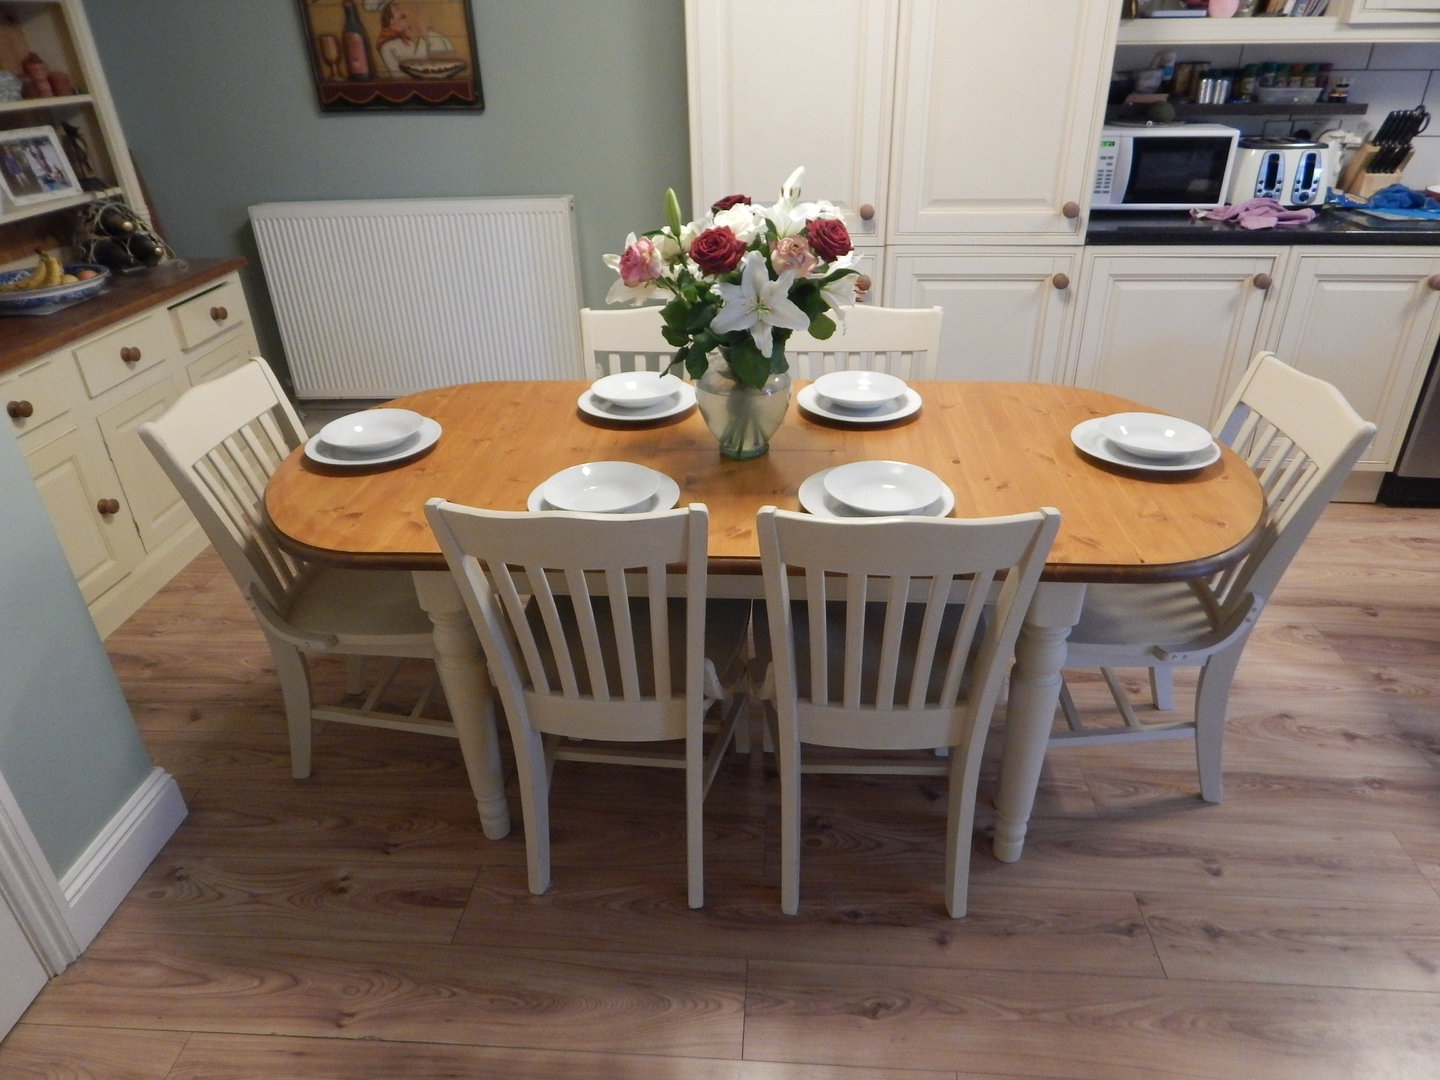 Extendable Dining Tables With 6 Chairs Within Most Recent Shabby Chic , Ducal Pine Extending Dining Table & 6 Chairs (Gallery 24 of 25)